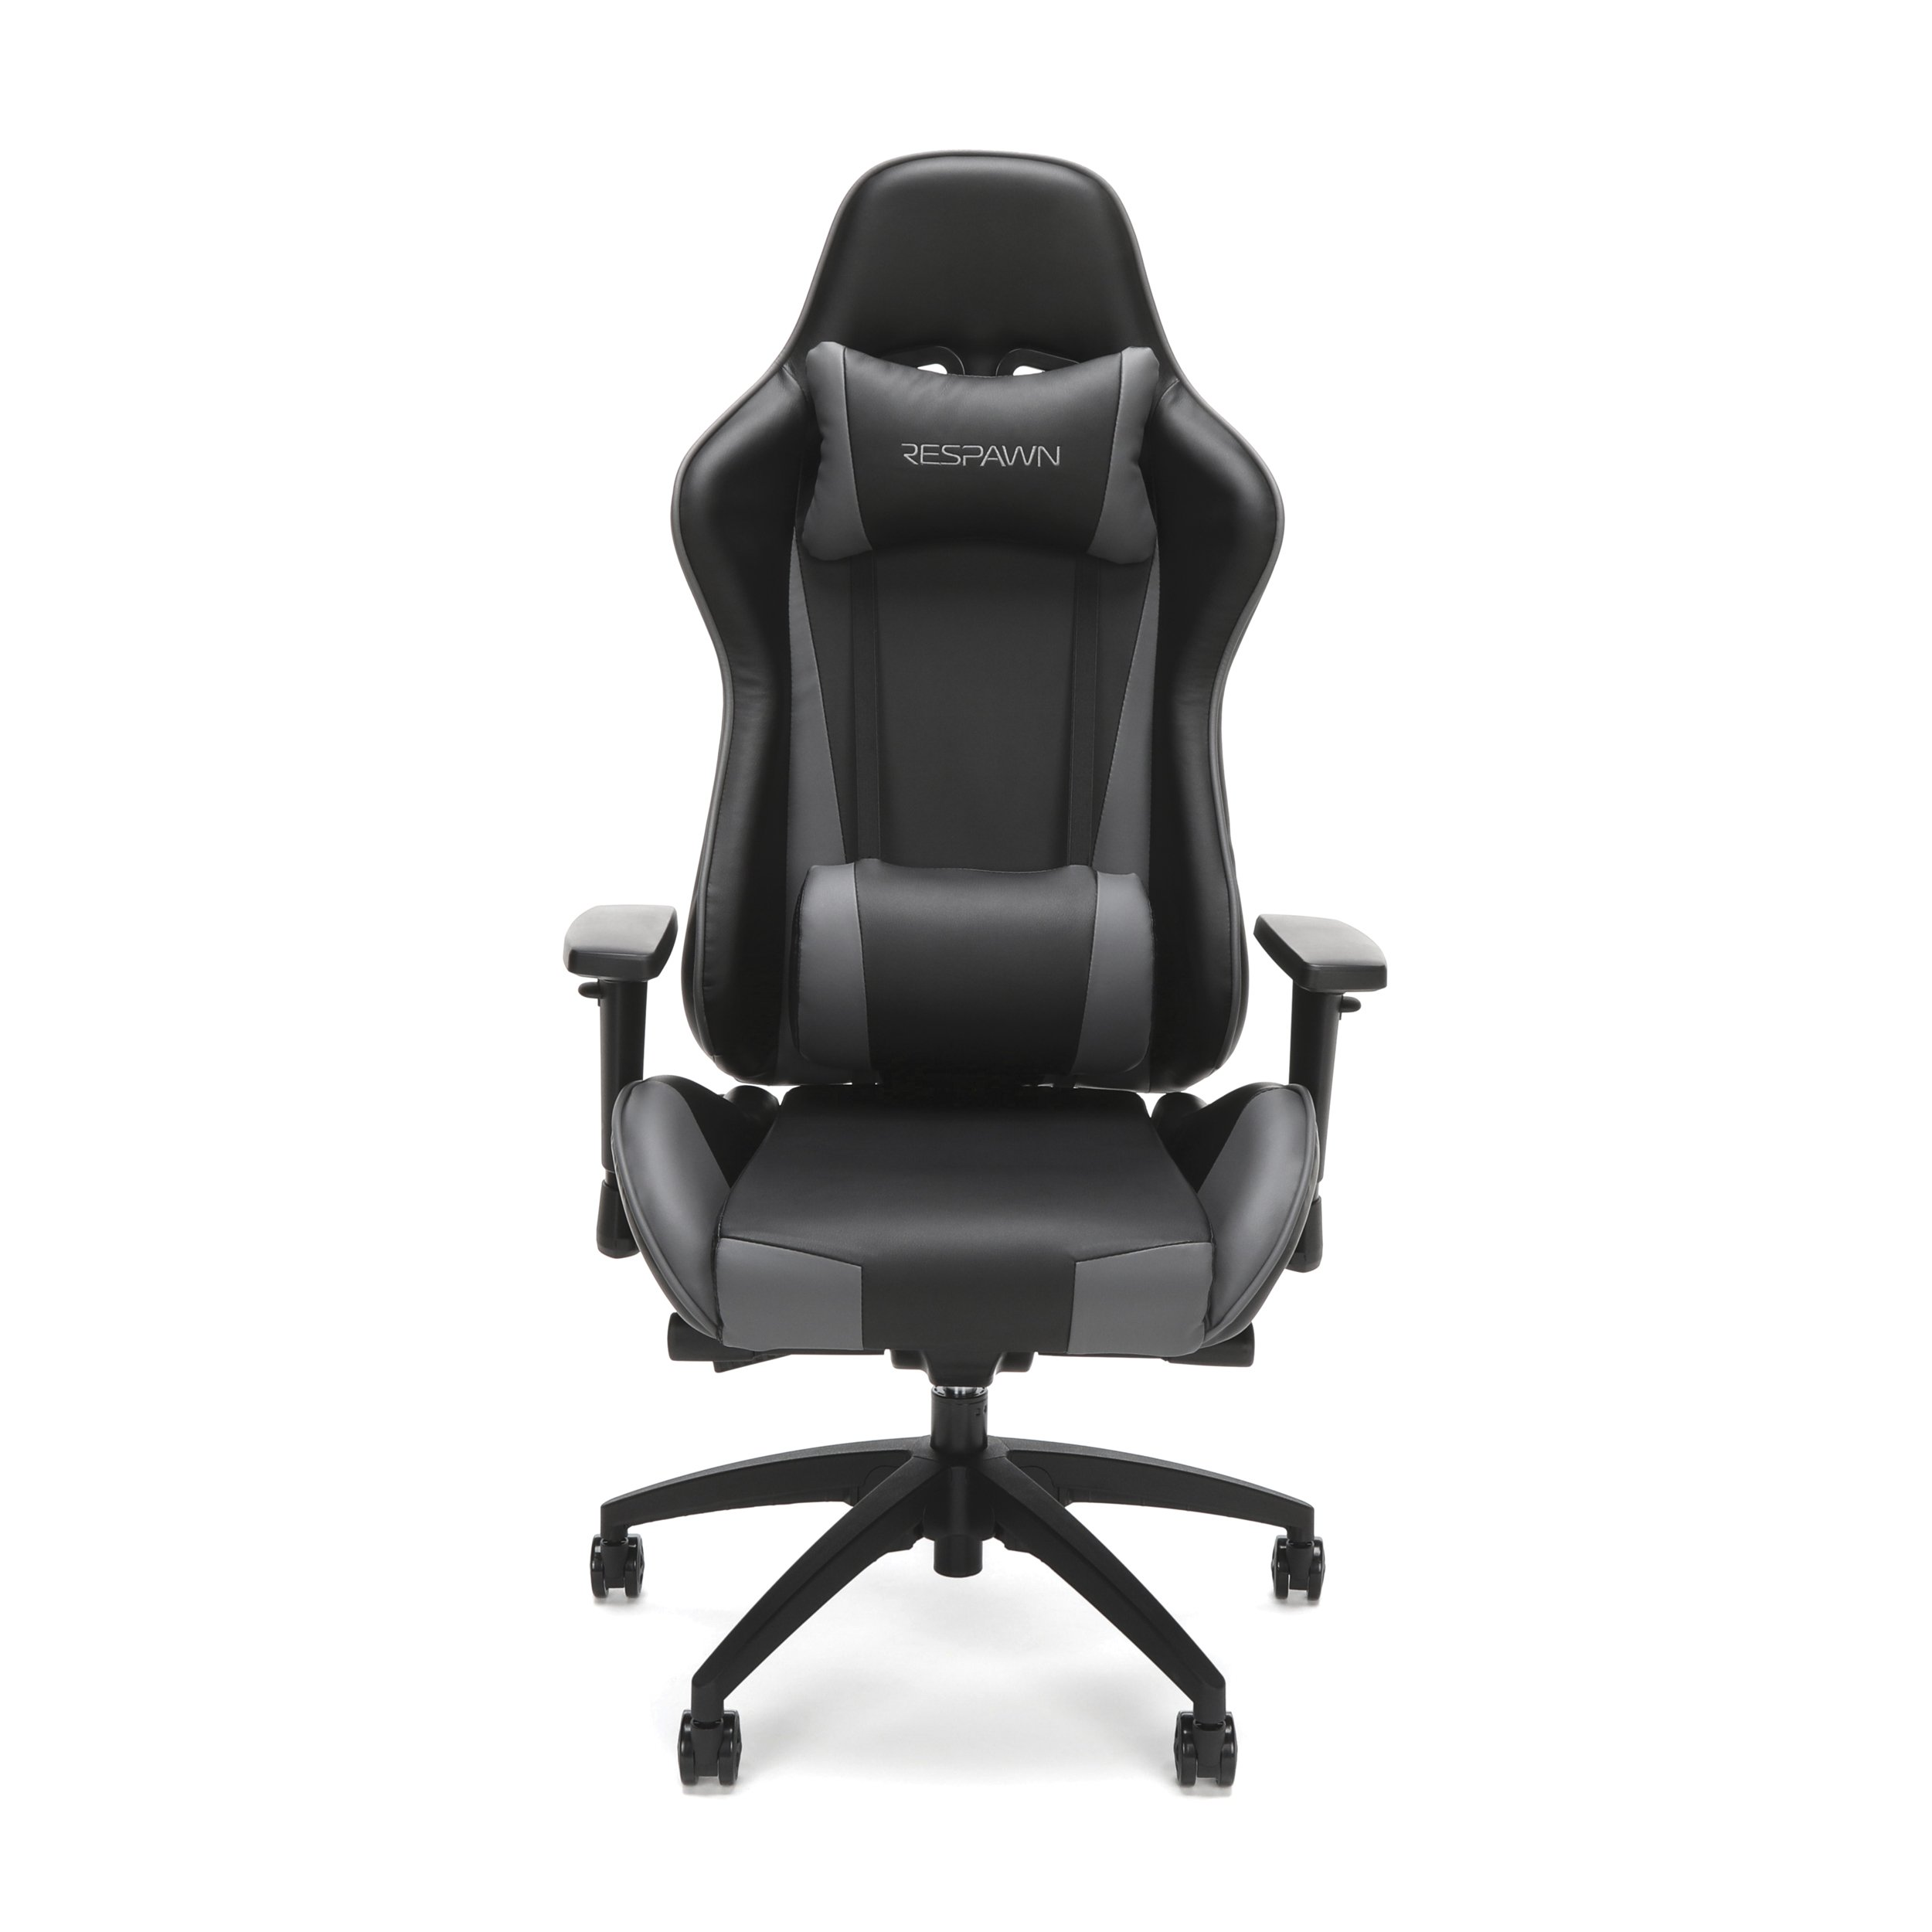 RESPAWN-105 Racing Style Gaming Chair - Reclining Ergonomic Leather Chair, Office or Gaming Chair (RSP-105-GRY) by RESPAWN (Image #2)